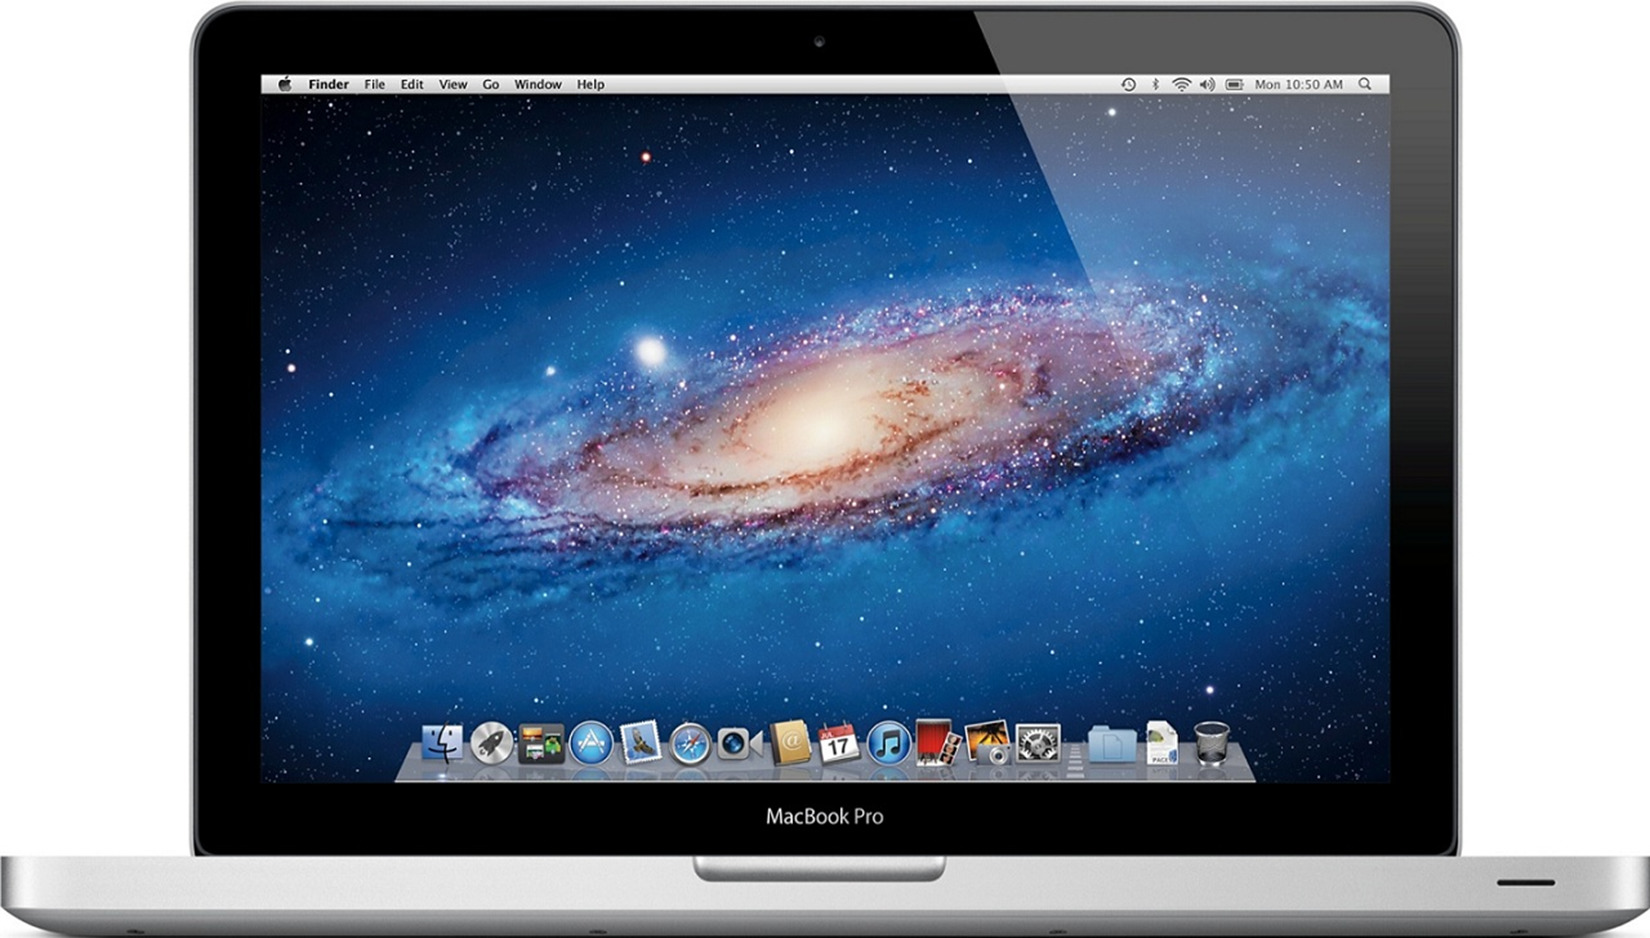 Apple MacBook Pro 15.4 (Glossy) 2.2 GHz Intel Core i7 4 GB RAM 750 GB HDD (5400 U/Min.) [Early 2011]